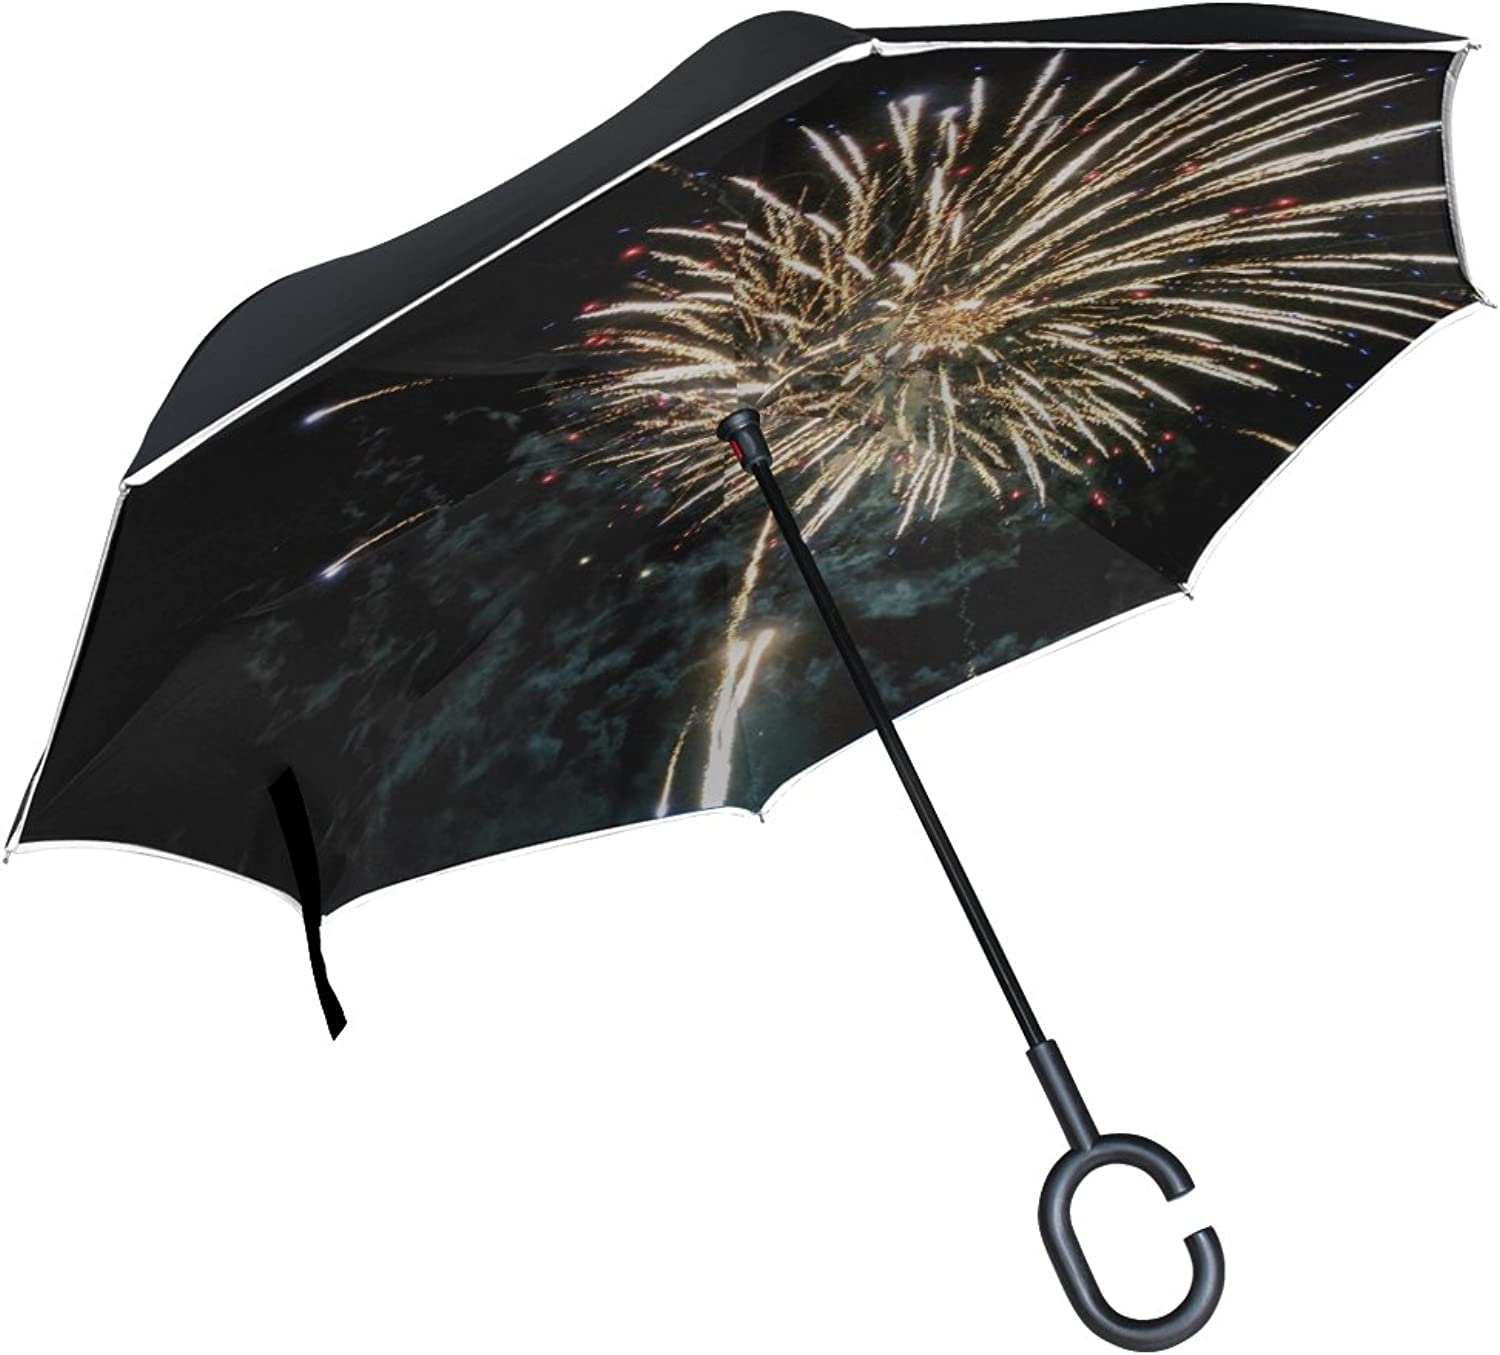 Double Layer Ingreened Fireworks color New Year's Eve Lights Rocket Umbrellas Reverse Folding Umbrella Windproof Uv Predection Big Straight Umbrella for Car Rain Outdoor with CShaped Handle